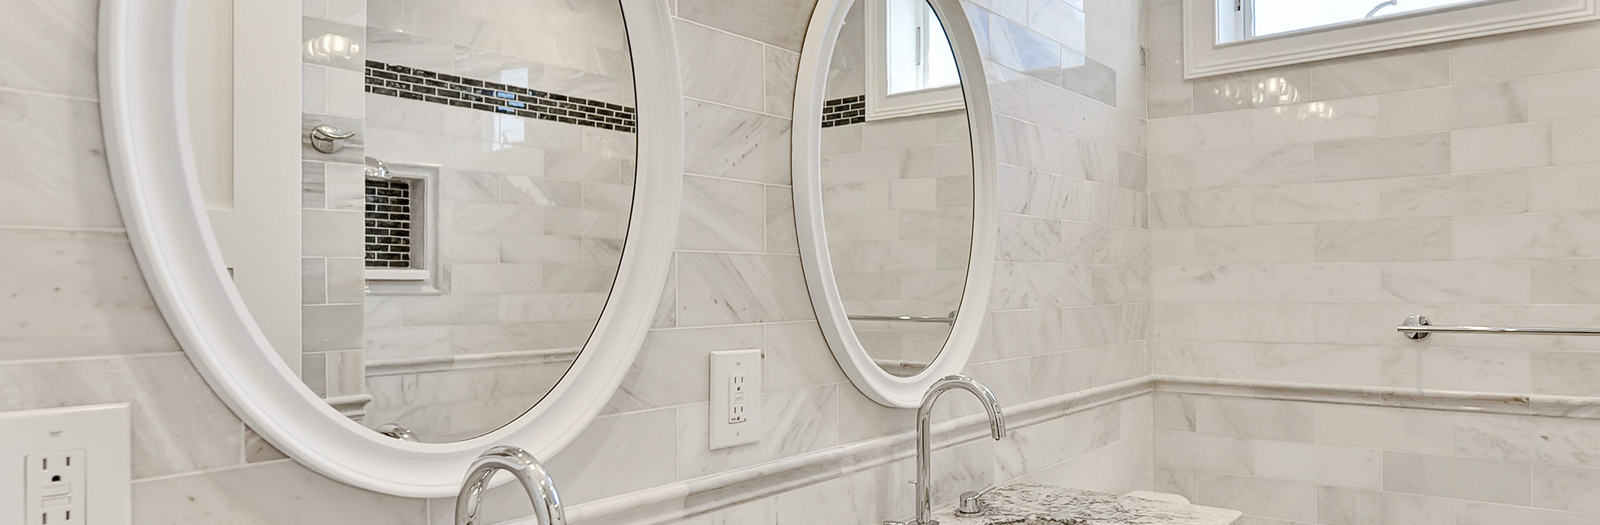 Transitional Bathroom with white framed vanity mirror